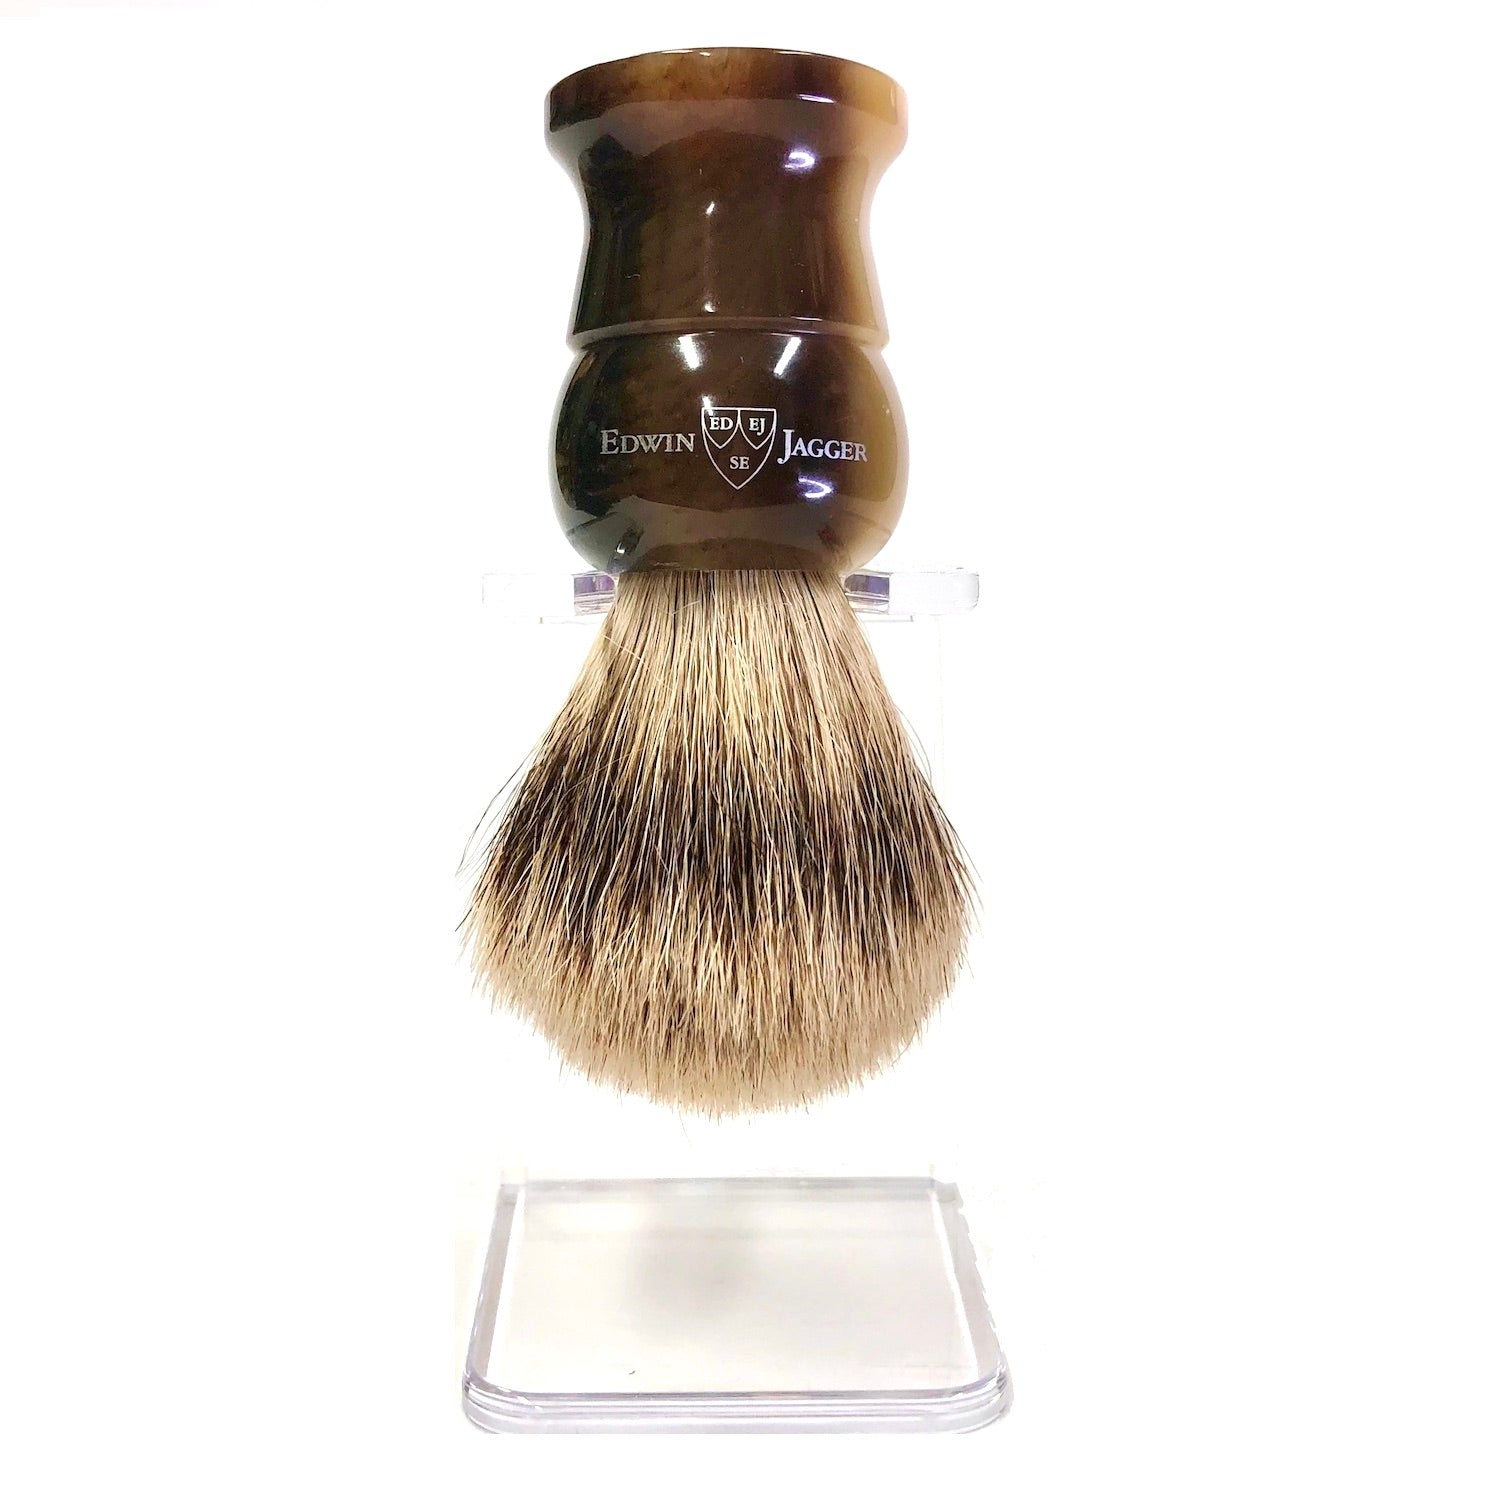 Edwin Jagger Super Badger Shaving Brush with Imitation Horn Handle